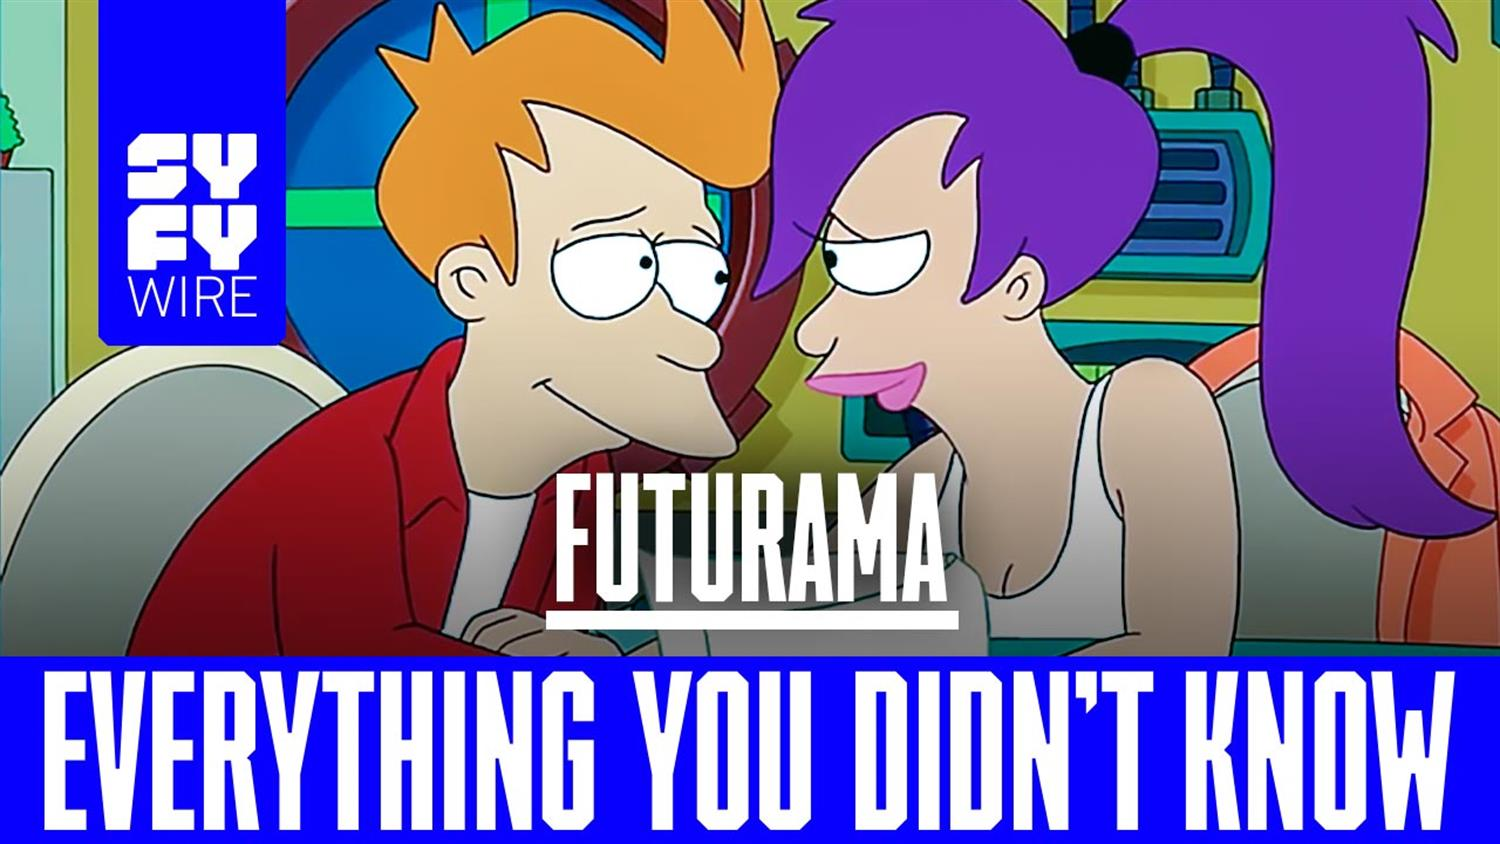 Futurama Was Born in 1939 (Everything You Didn't Know)